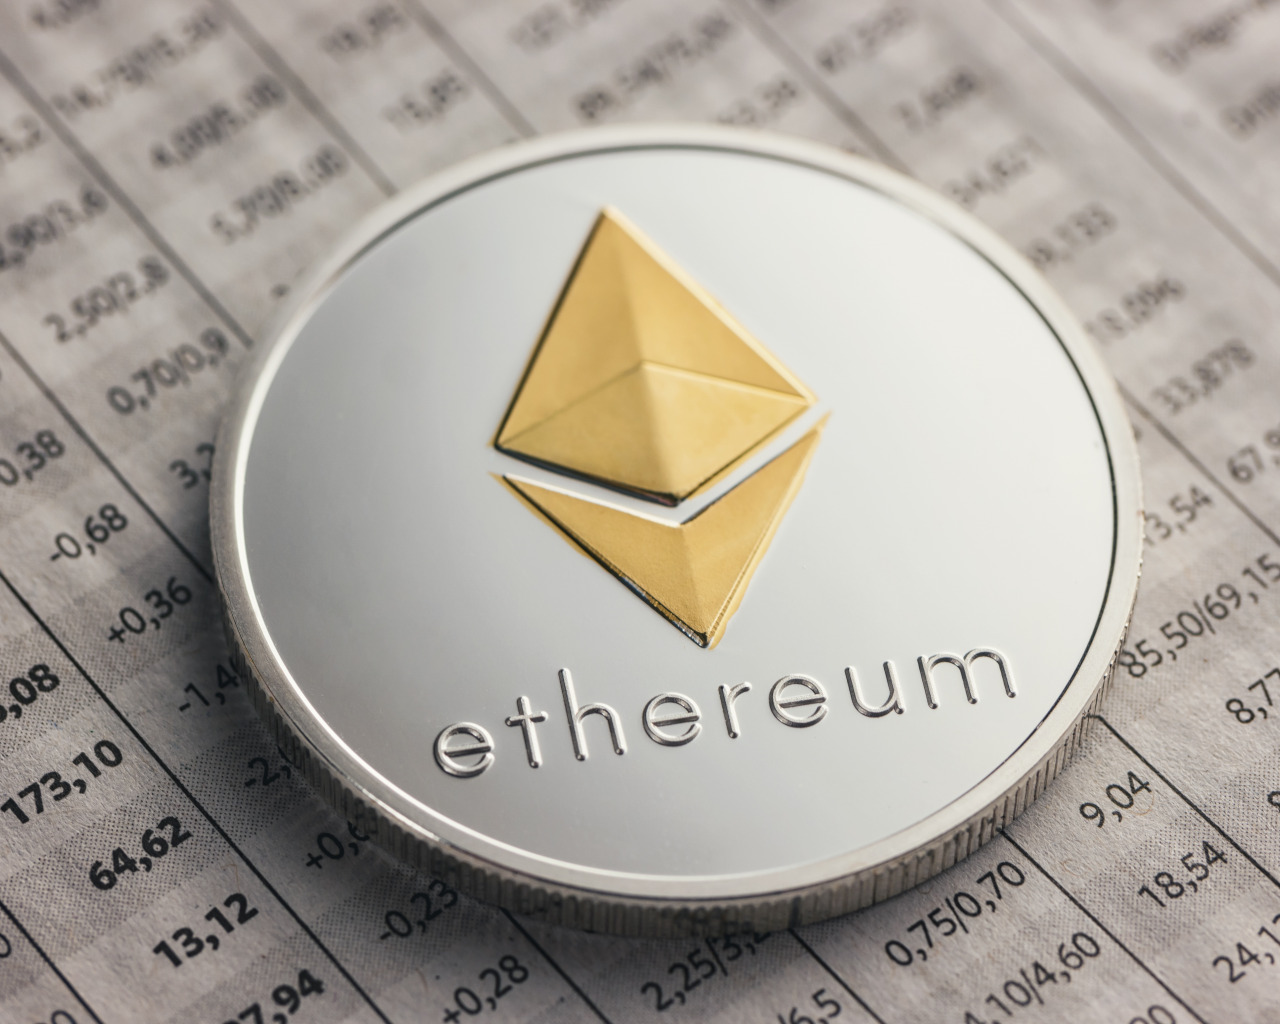 US CFTC Chairman Says Ether Is a Commodity, ETH Futures Coming Next